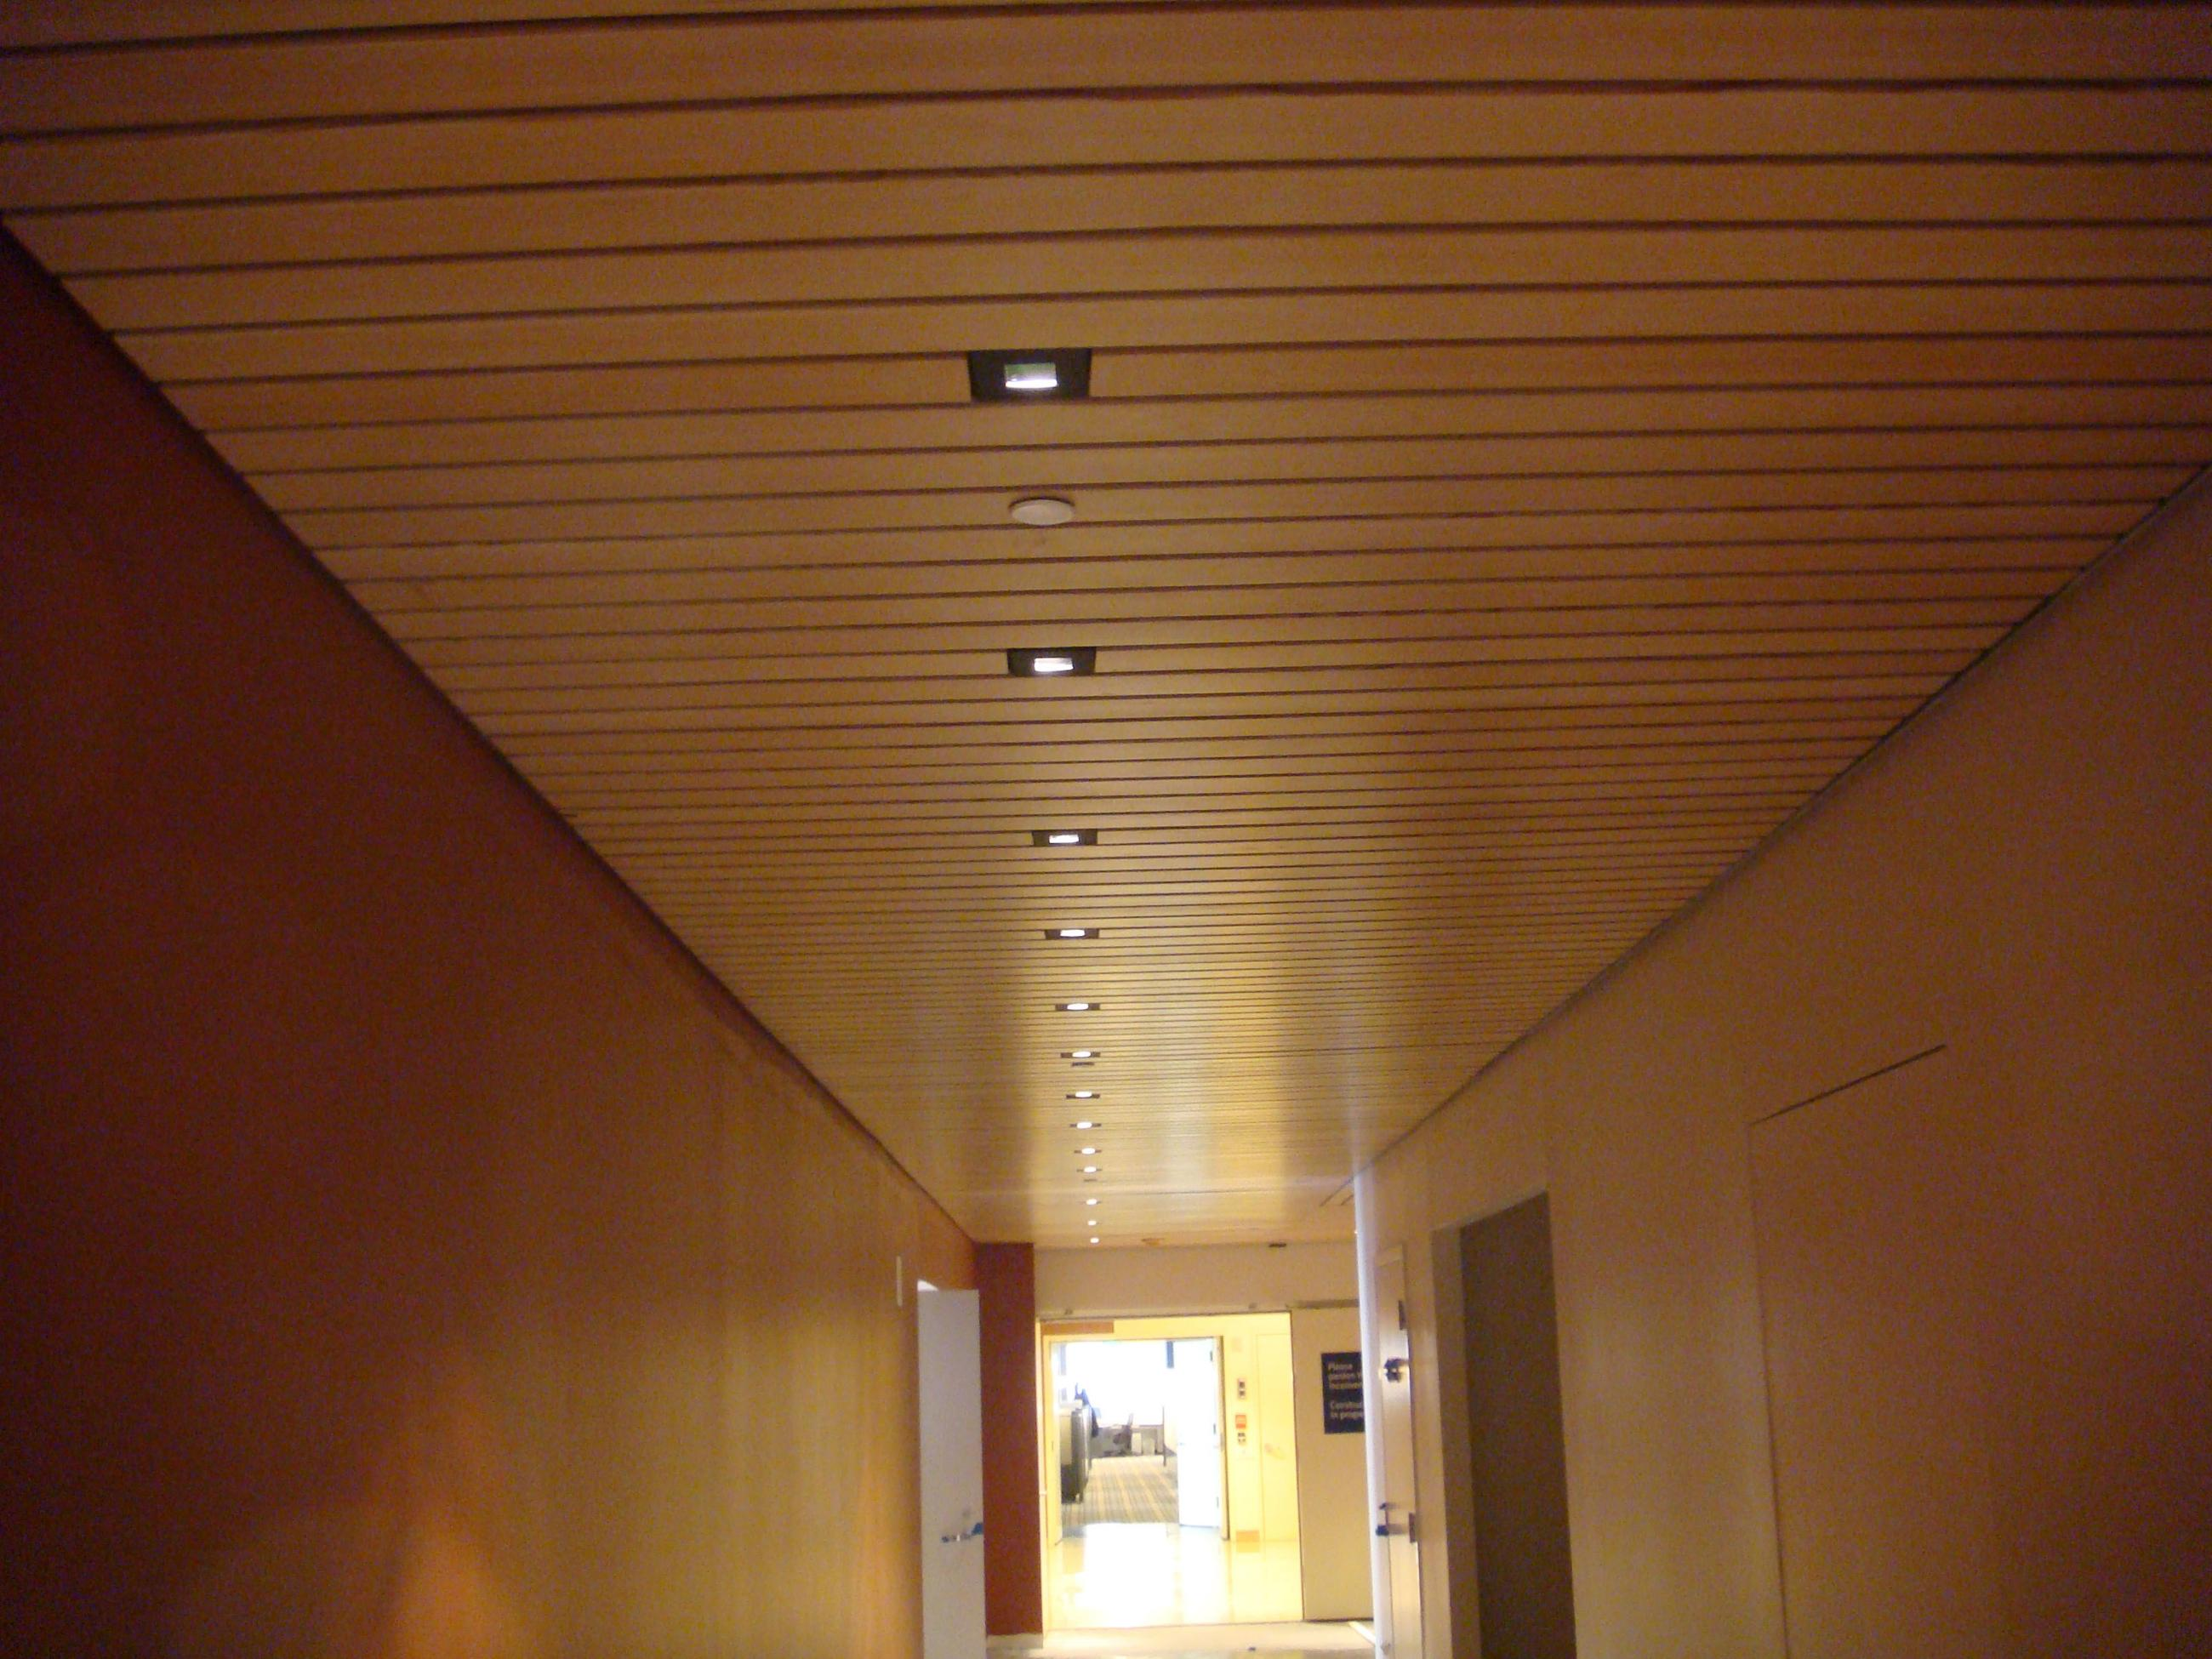 armstrong image x tiles flooring choice ceilings org sahara size panels boatylicious impression ceiling for tile